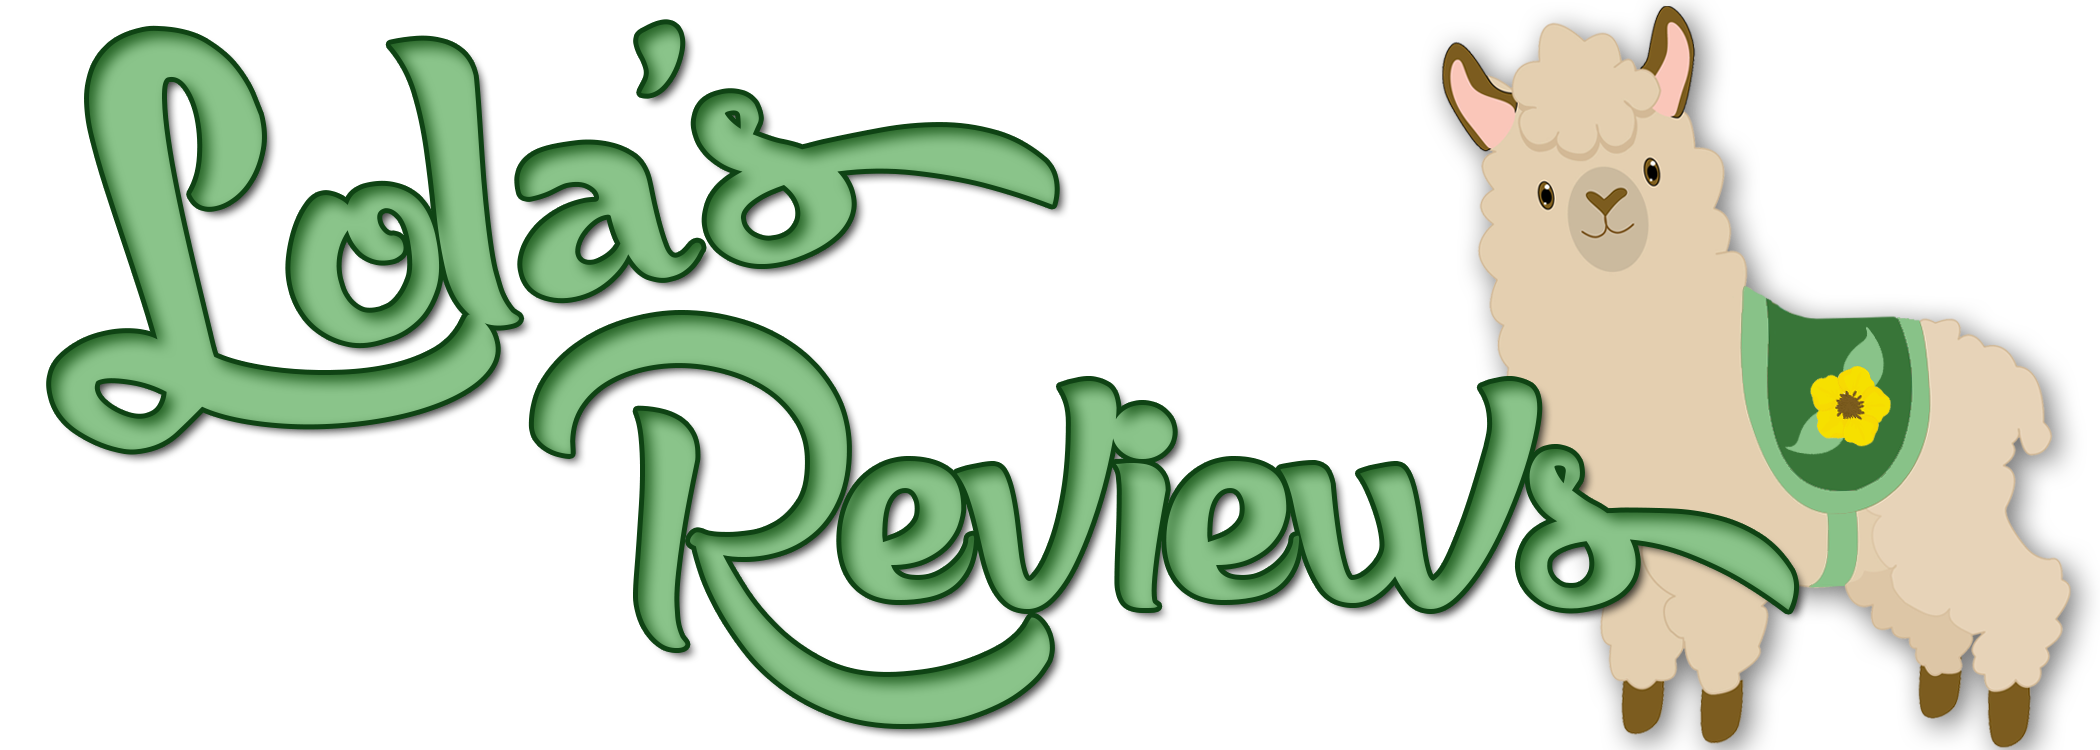 Lola's Reviews